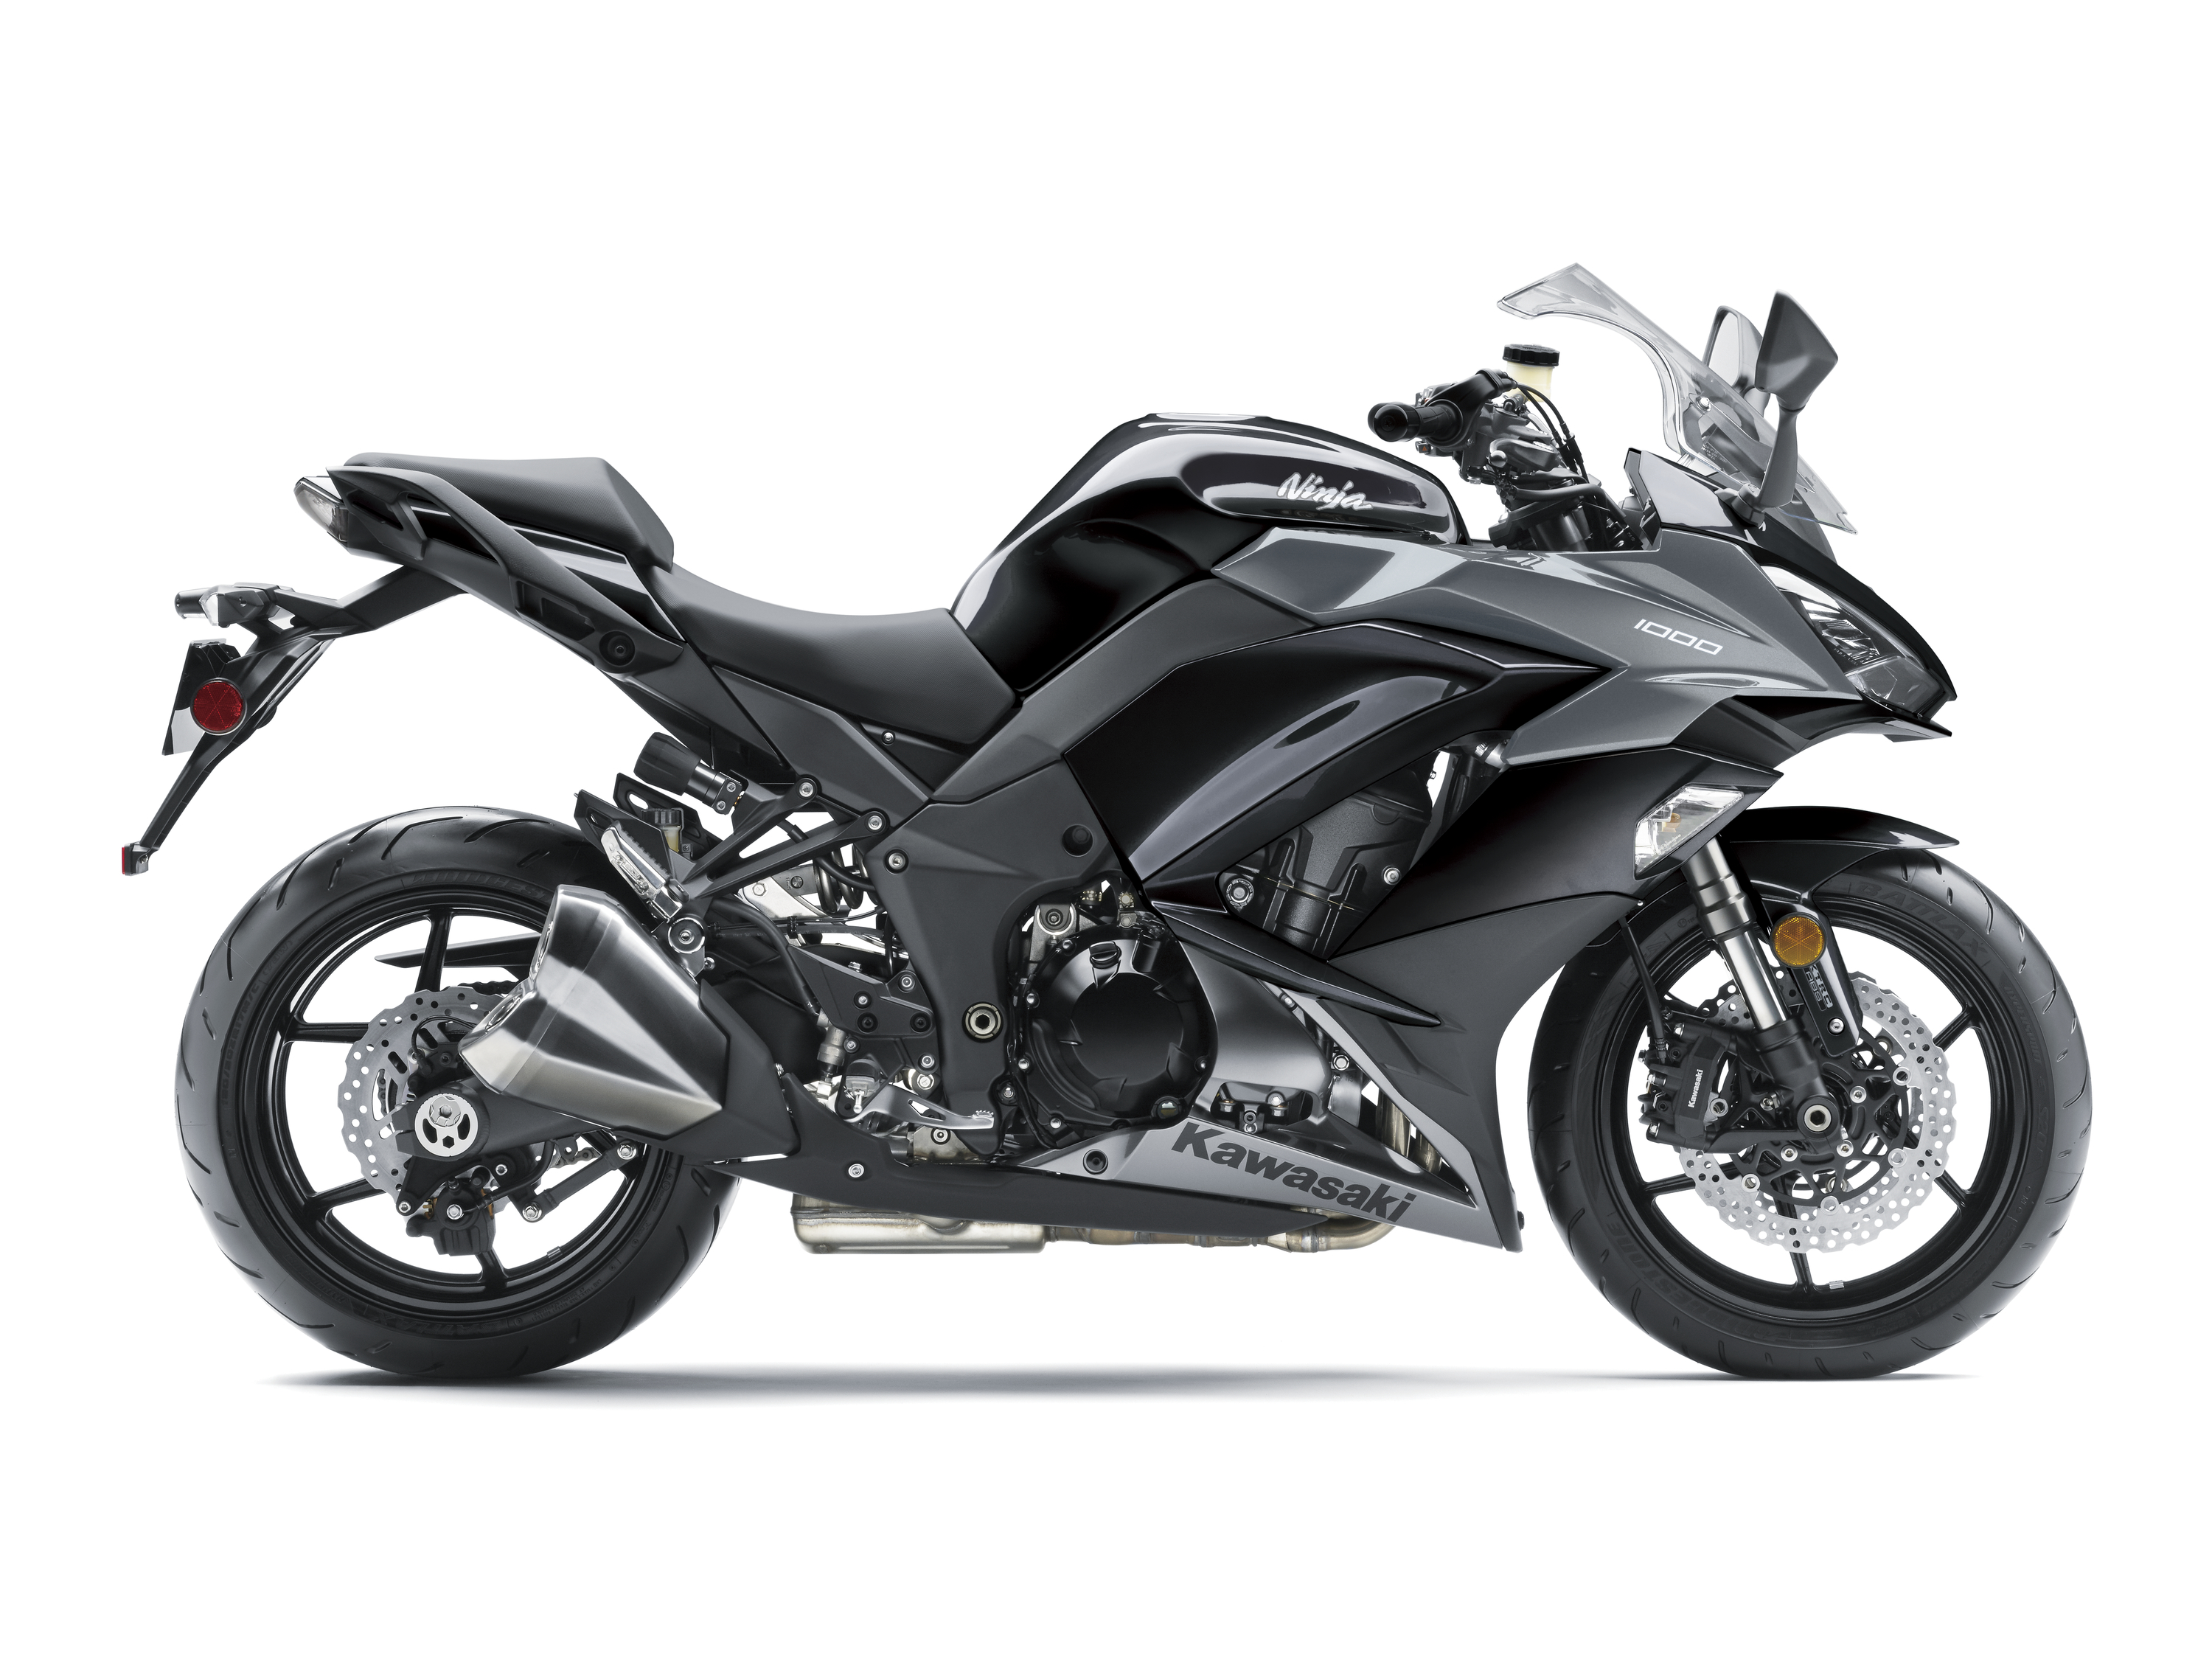 17_ZX1000W_BK2_RS_OR 2017 kawasaki ninja 1000 first ride review Trailer Wiring Diagram at soozxer.org